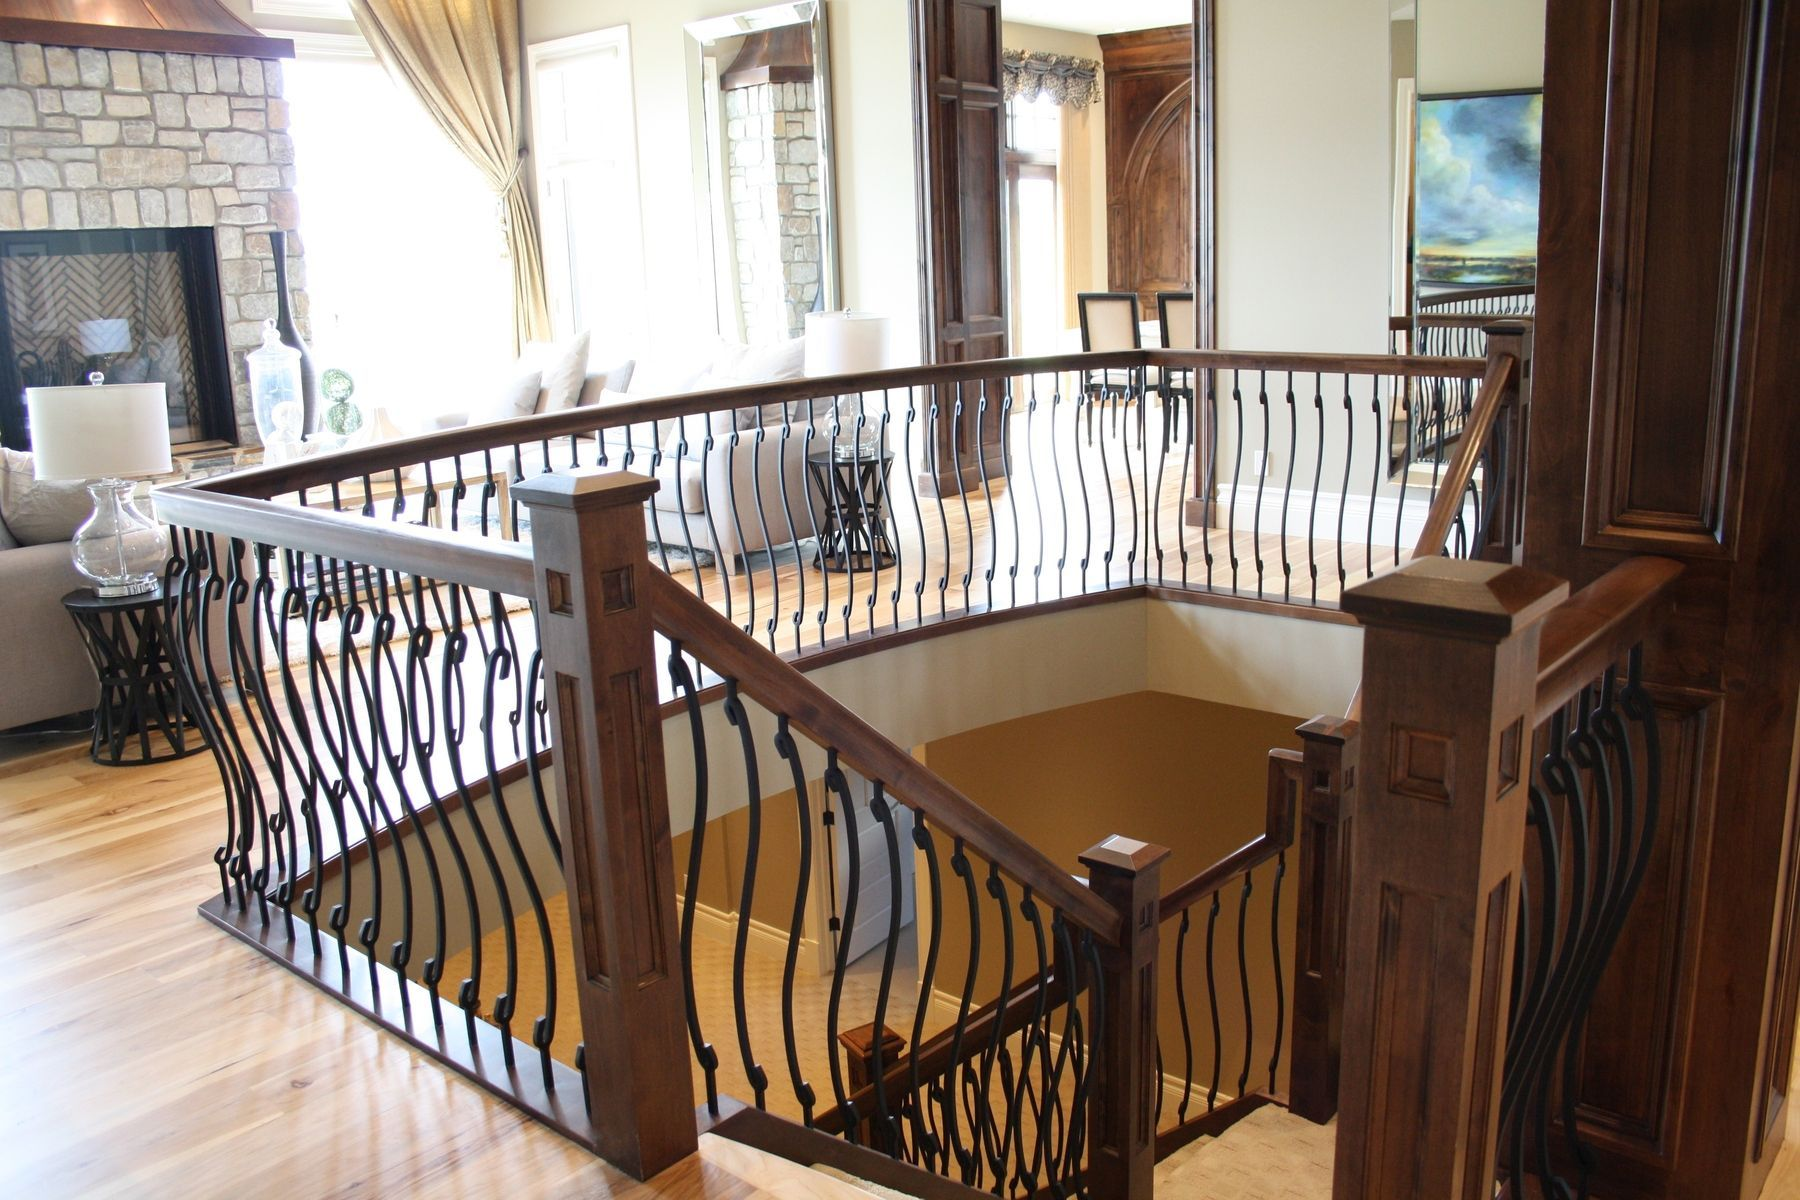 Custom Made Wood Stair Rail With S Shaped Spindles